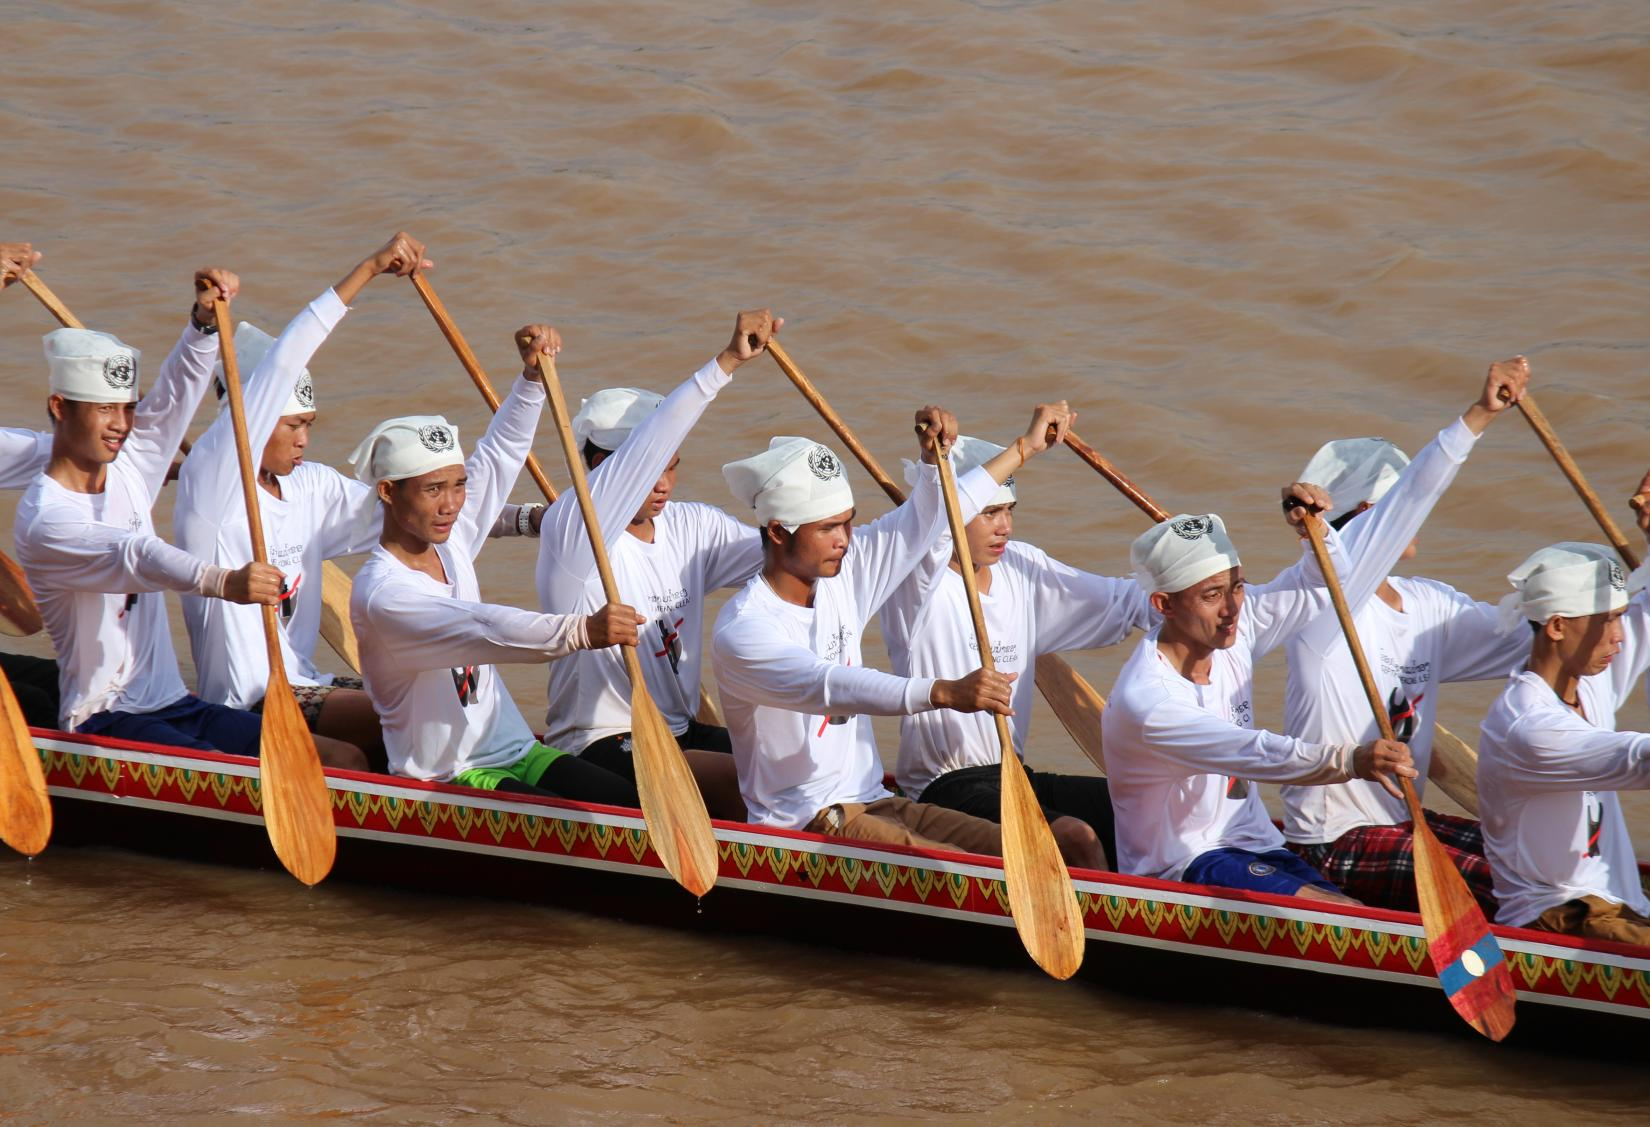 The UN-supported boat racing team in Lao PDR on a crusade against single-use plastics.